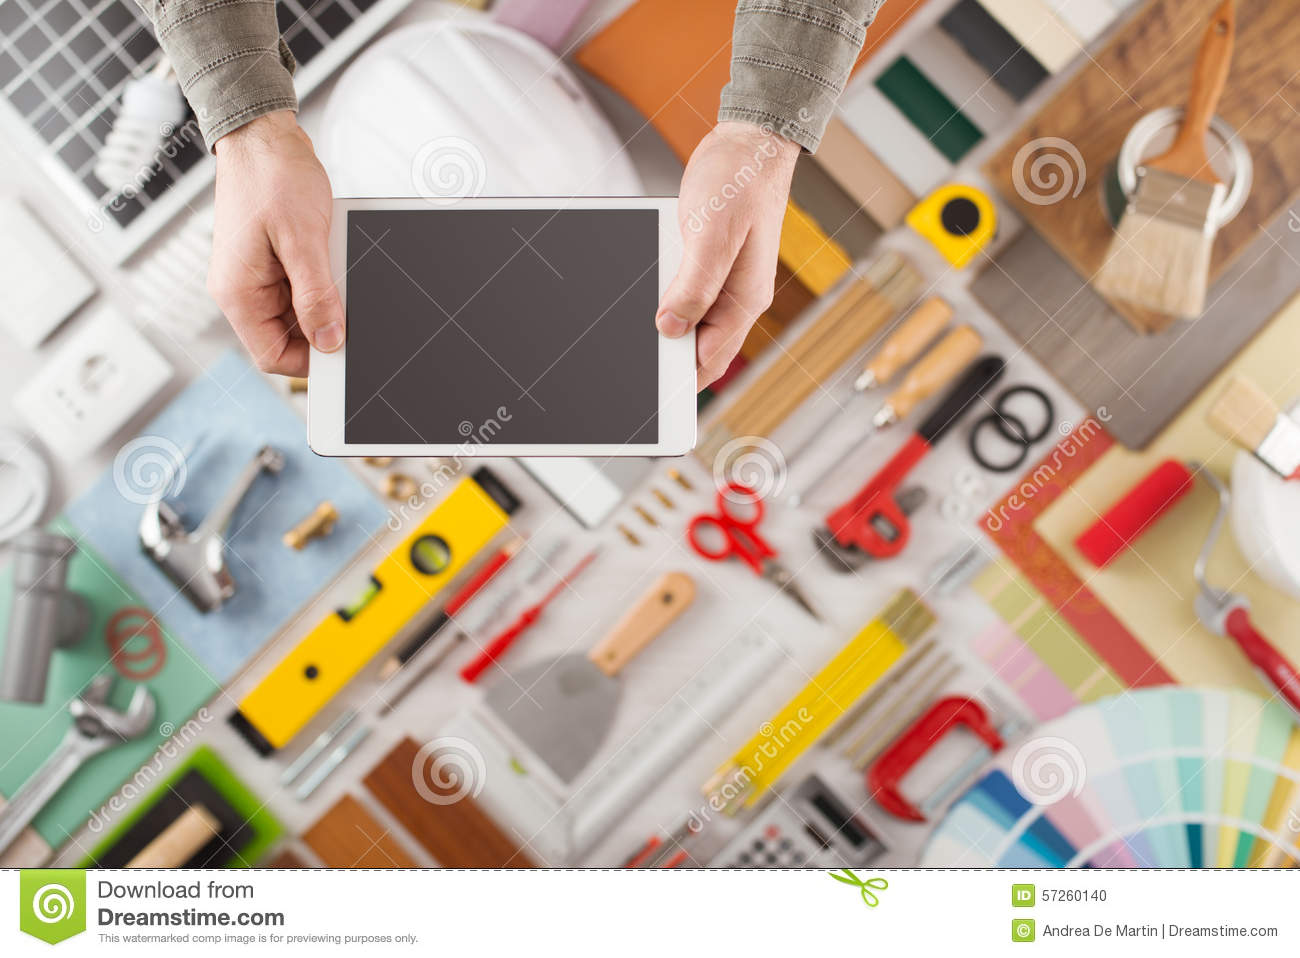 Home Renovation App home renovation and diy app on mobile device stock photo - image